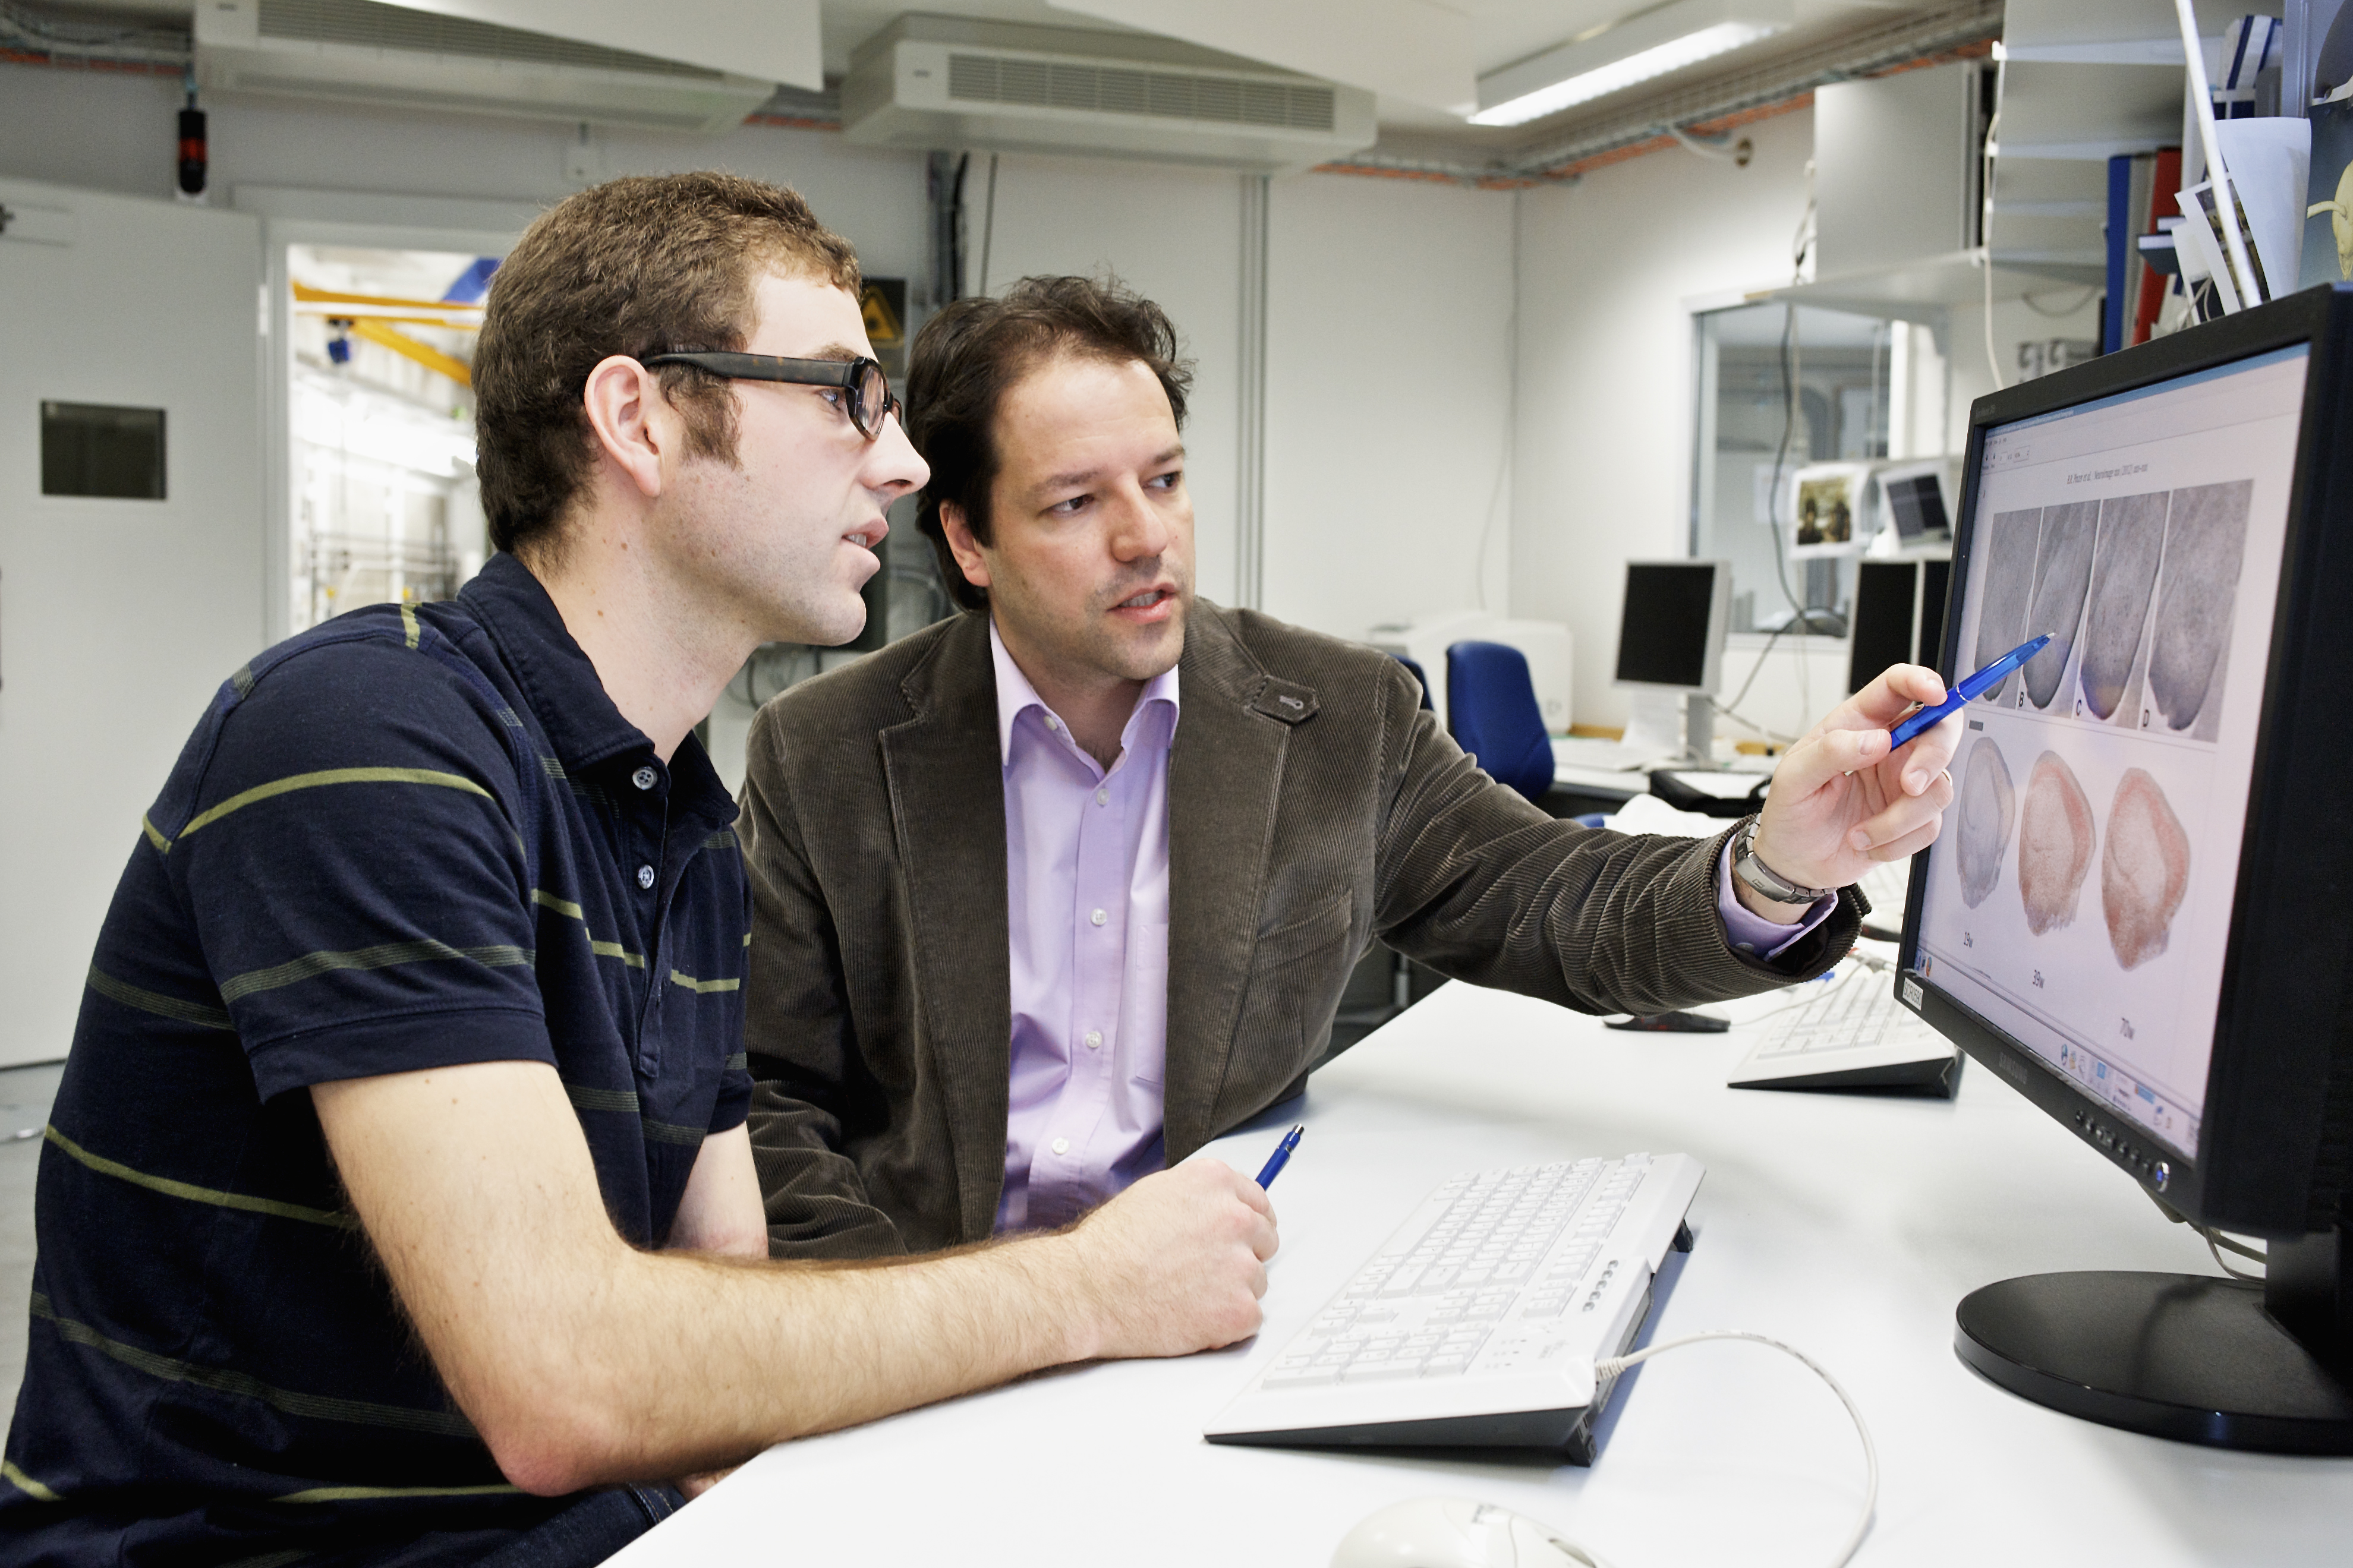 PSI researchers Bernd Pinzer and Marco Stampanoni discussing the results of their investigations on Alzheimer's disease. (Photo: Paul Scherrer Institute/M. Fischer)